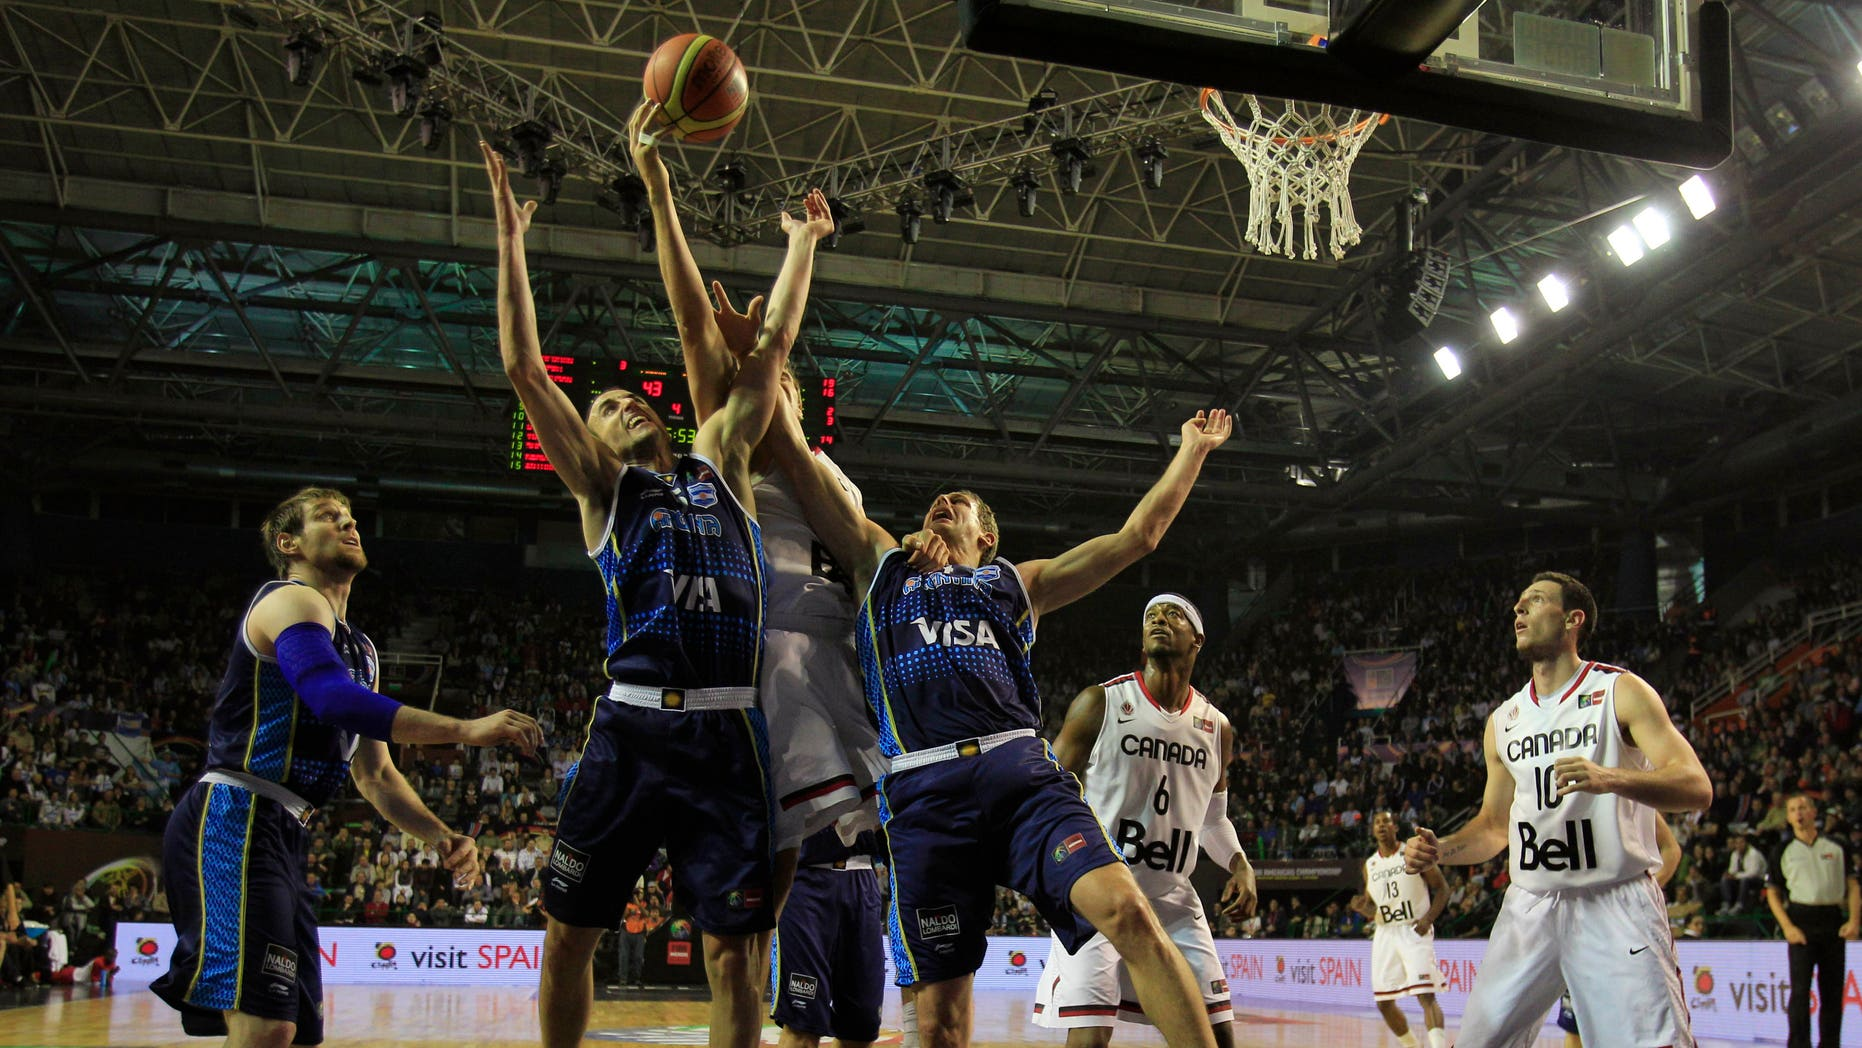 Argentina's players and Canada's players fight for possession during a FIBA Americas Championship basketball game in Mar del Plata, Argentina, Monday, Sept. 5, 2011. The top two finishers of the tournament get an automatic berth in the 2012 London Olympics and the next three advance to the last-chance Olympic qualifier to be held in July 2012. (AP Photo/Martin Mejia)